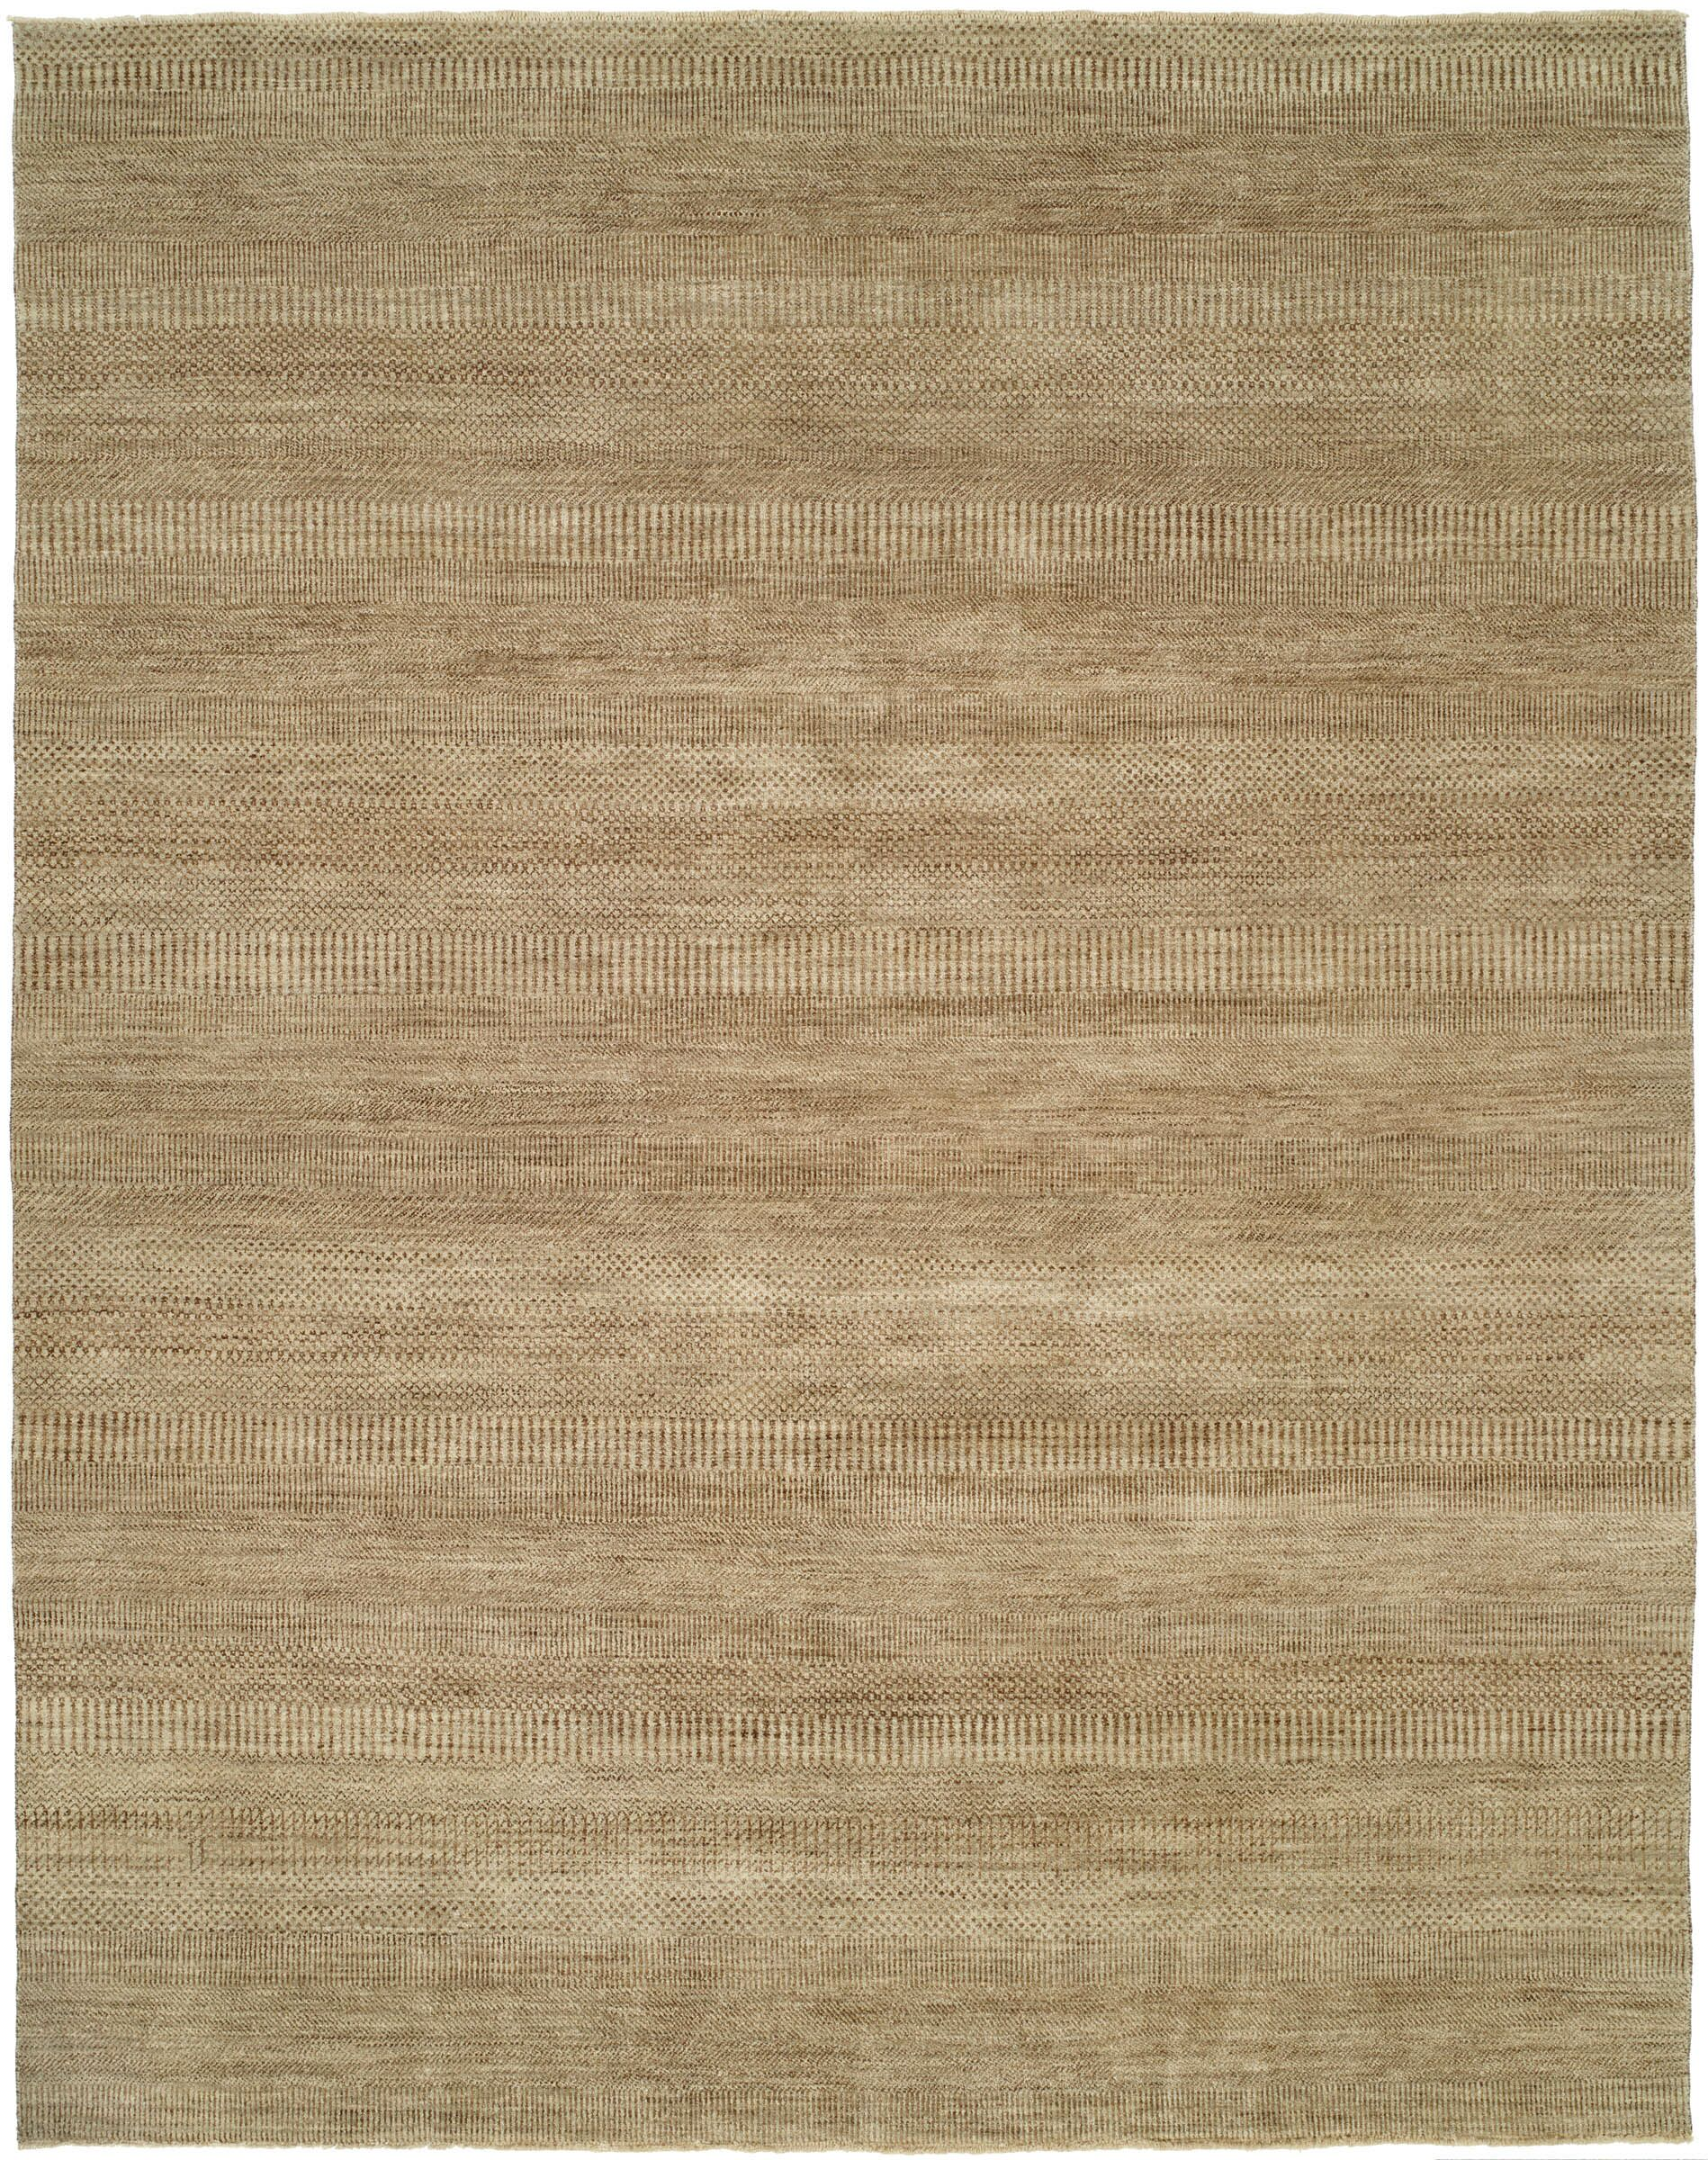 Illusions Grey/Light Brown Area Rug Rug Size: 4' x 6'